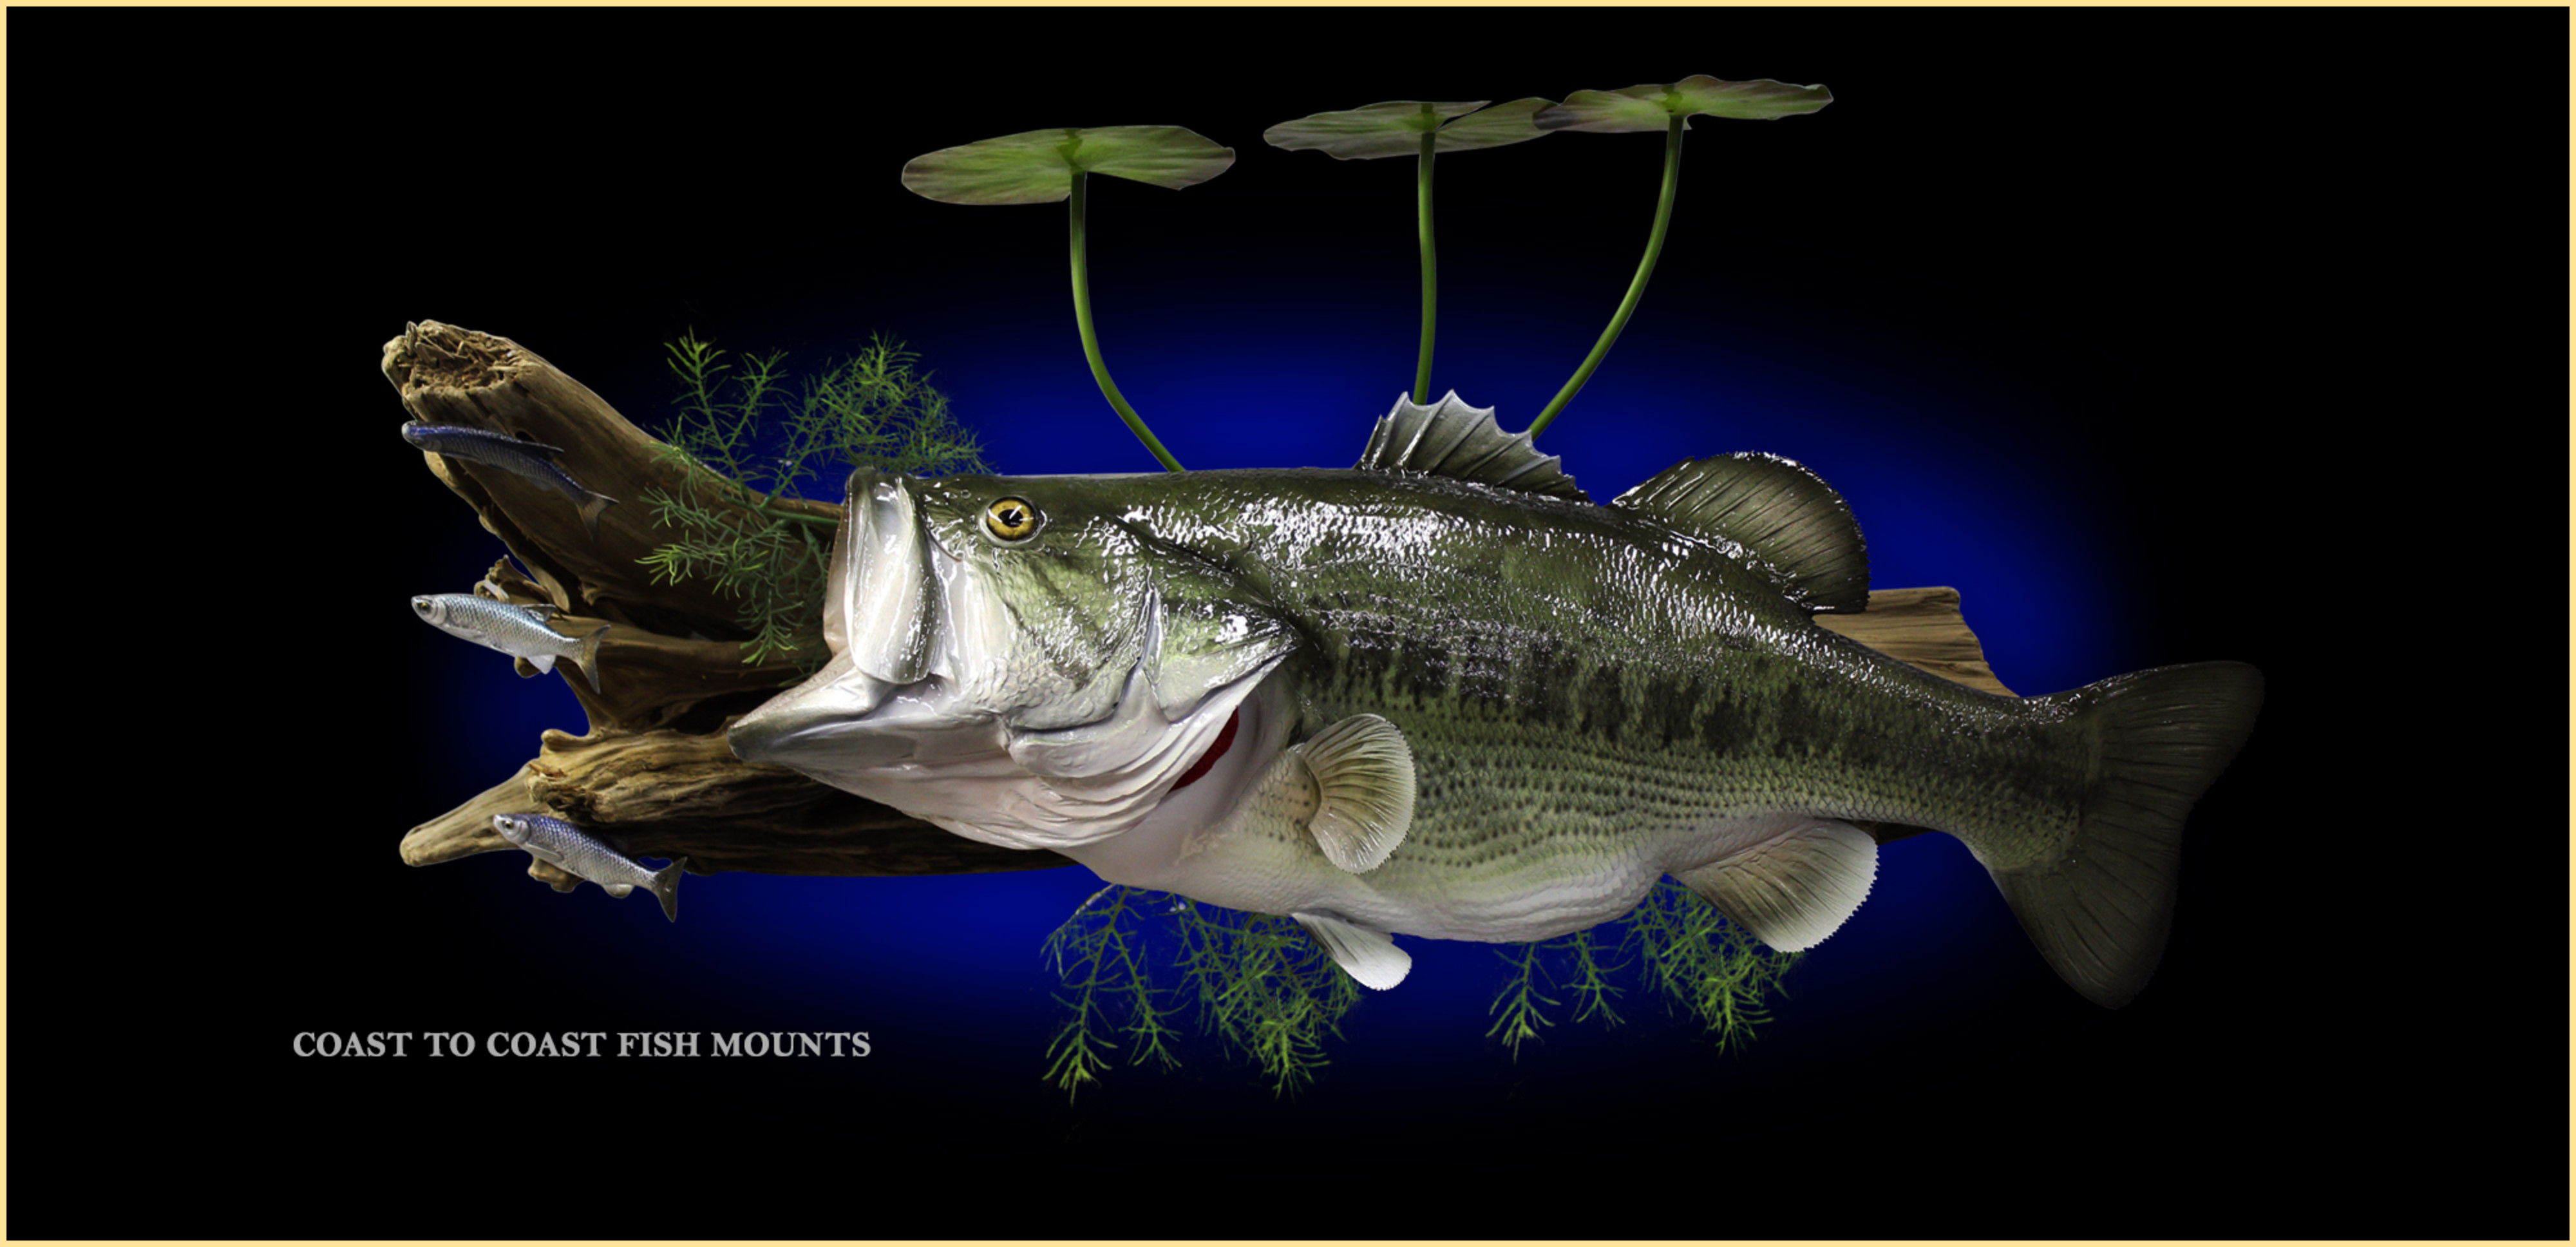 Largemouth bass fish mount and fish replicas coast to coast for What fish is this